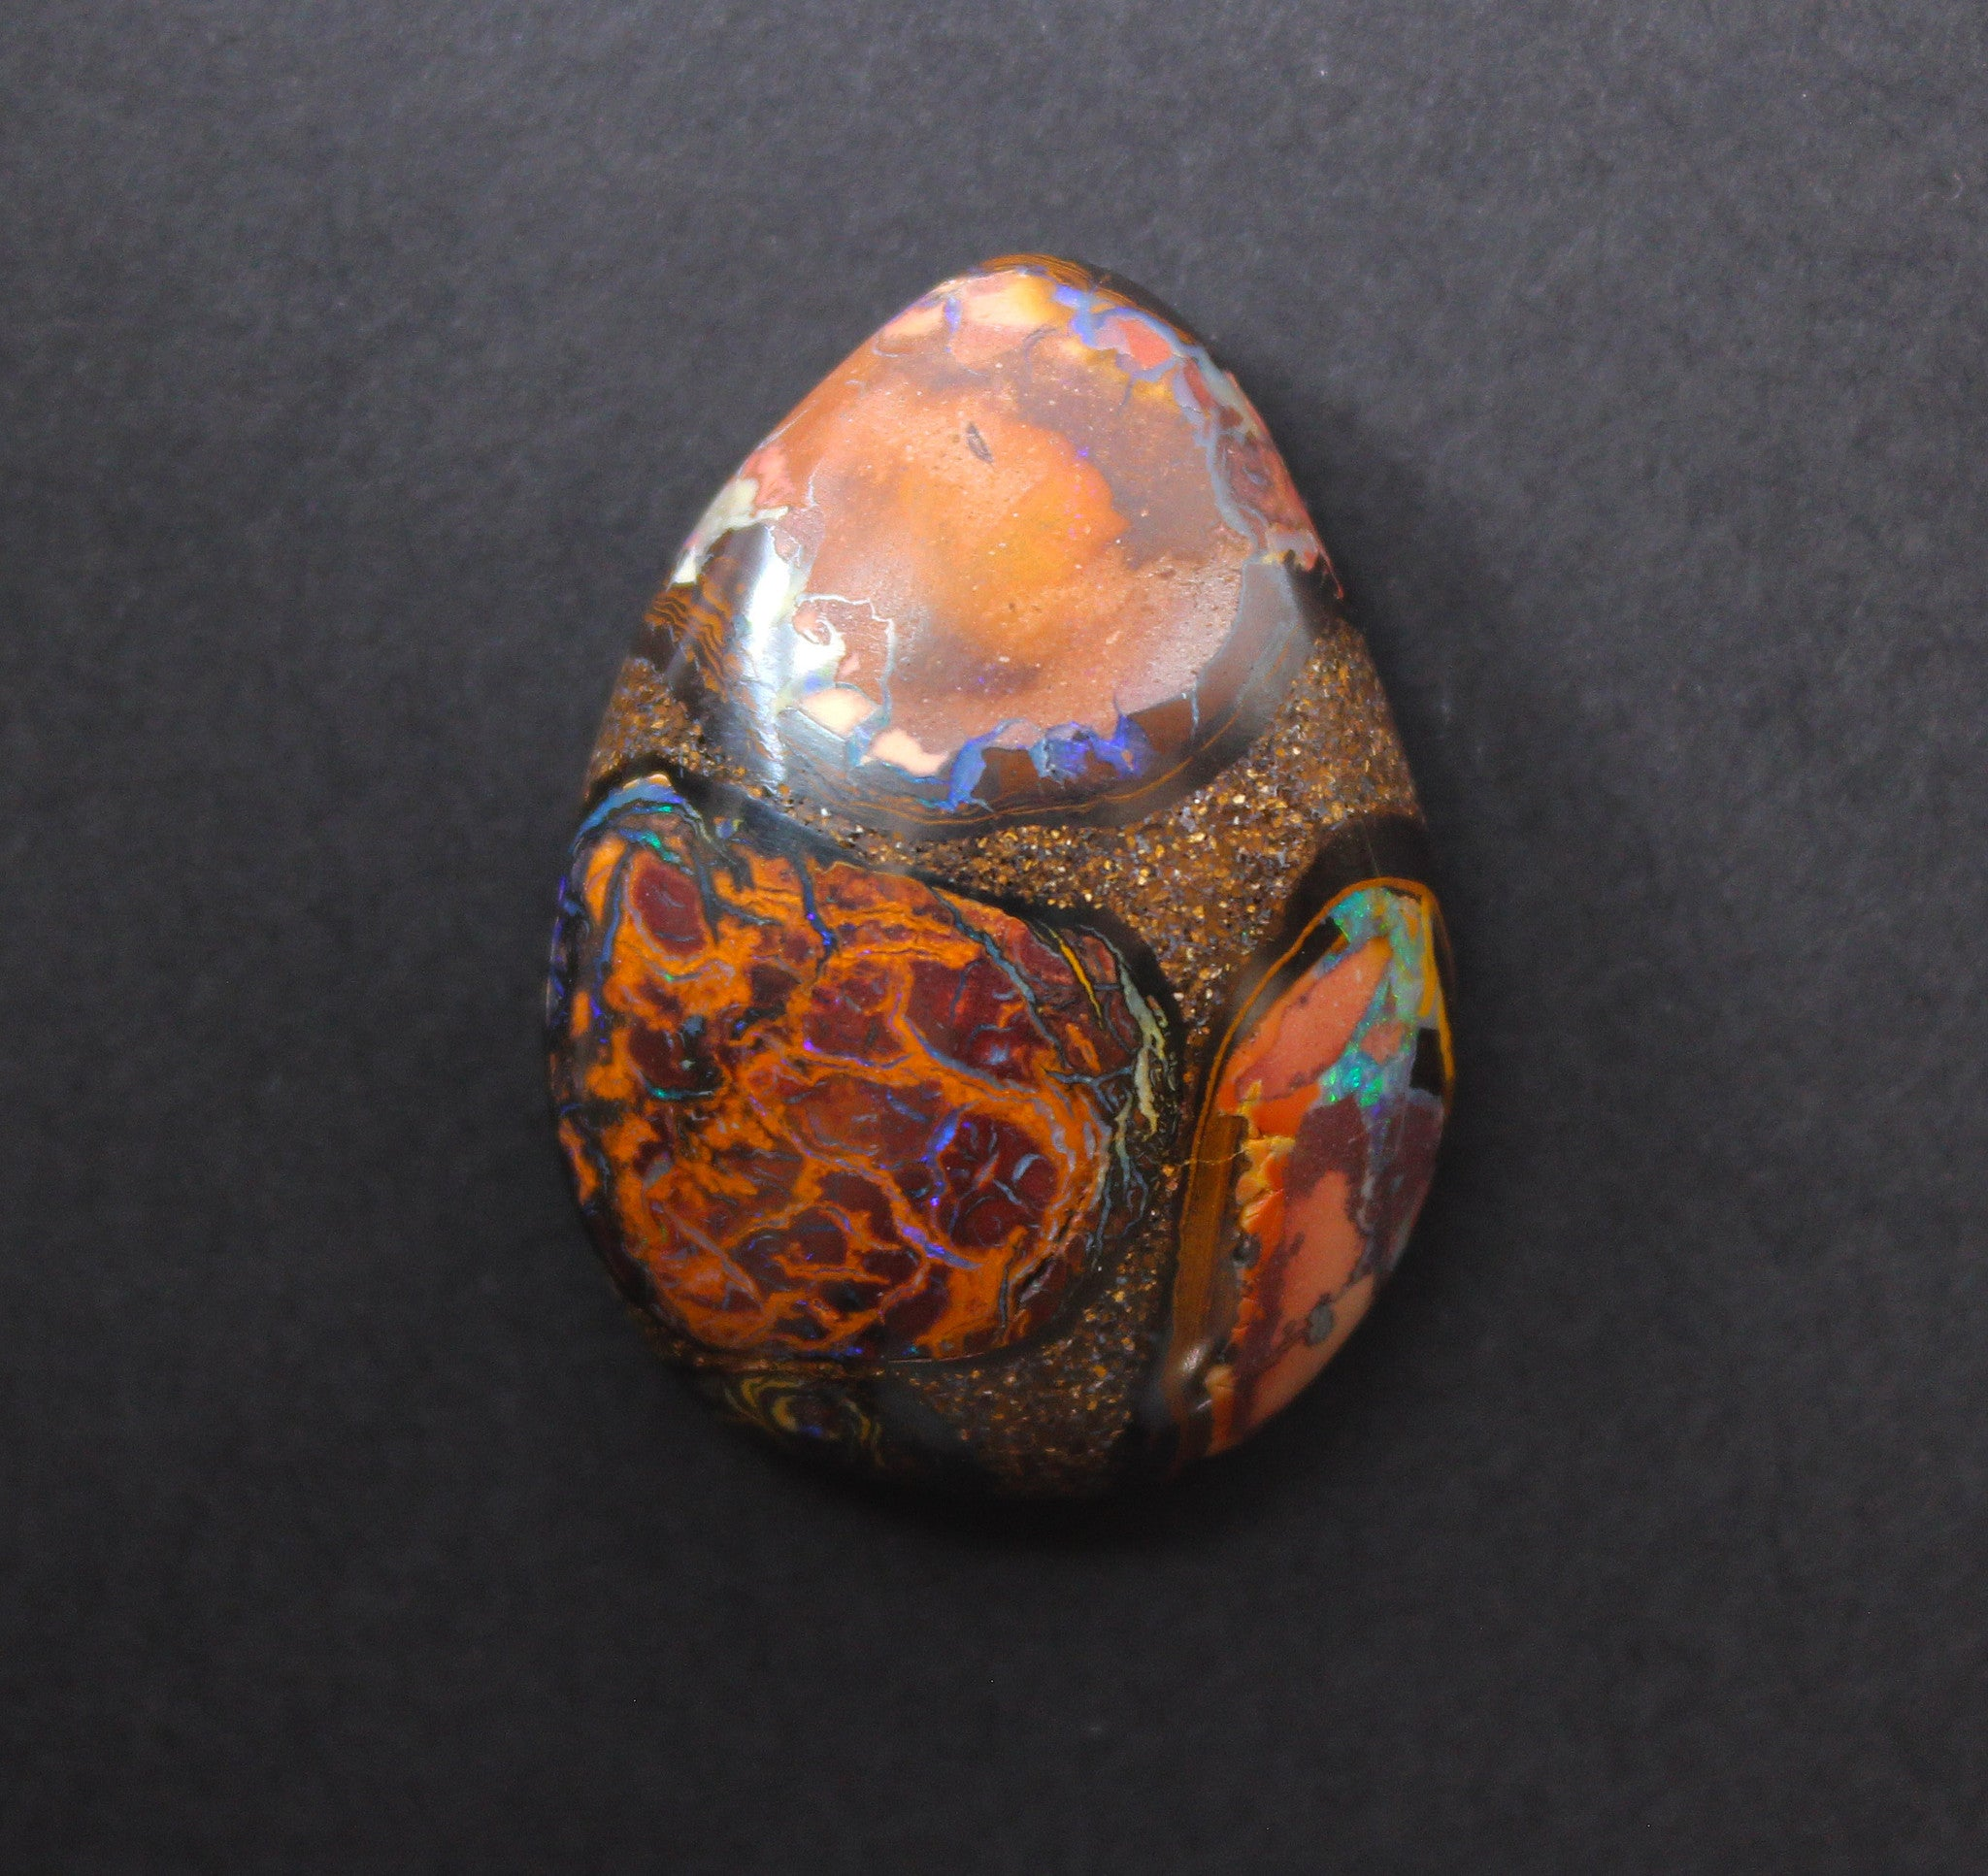 Australian boulder opal from Lightning Ridge polished cabochon CLICK HERE - Sarah Hughes - 6